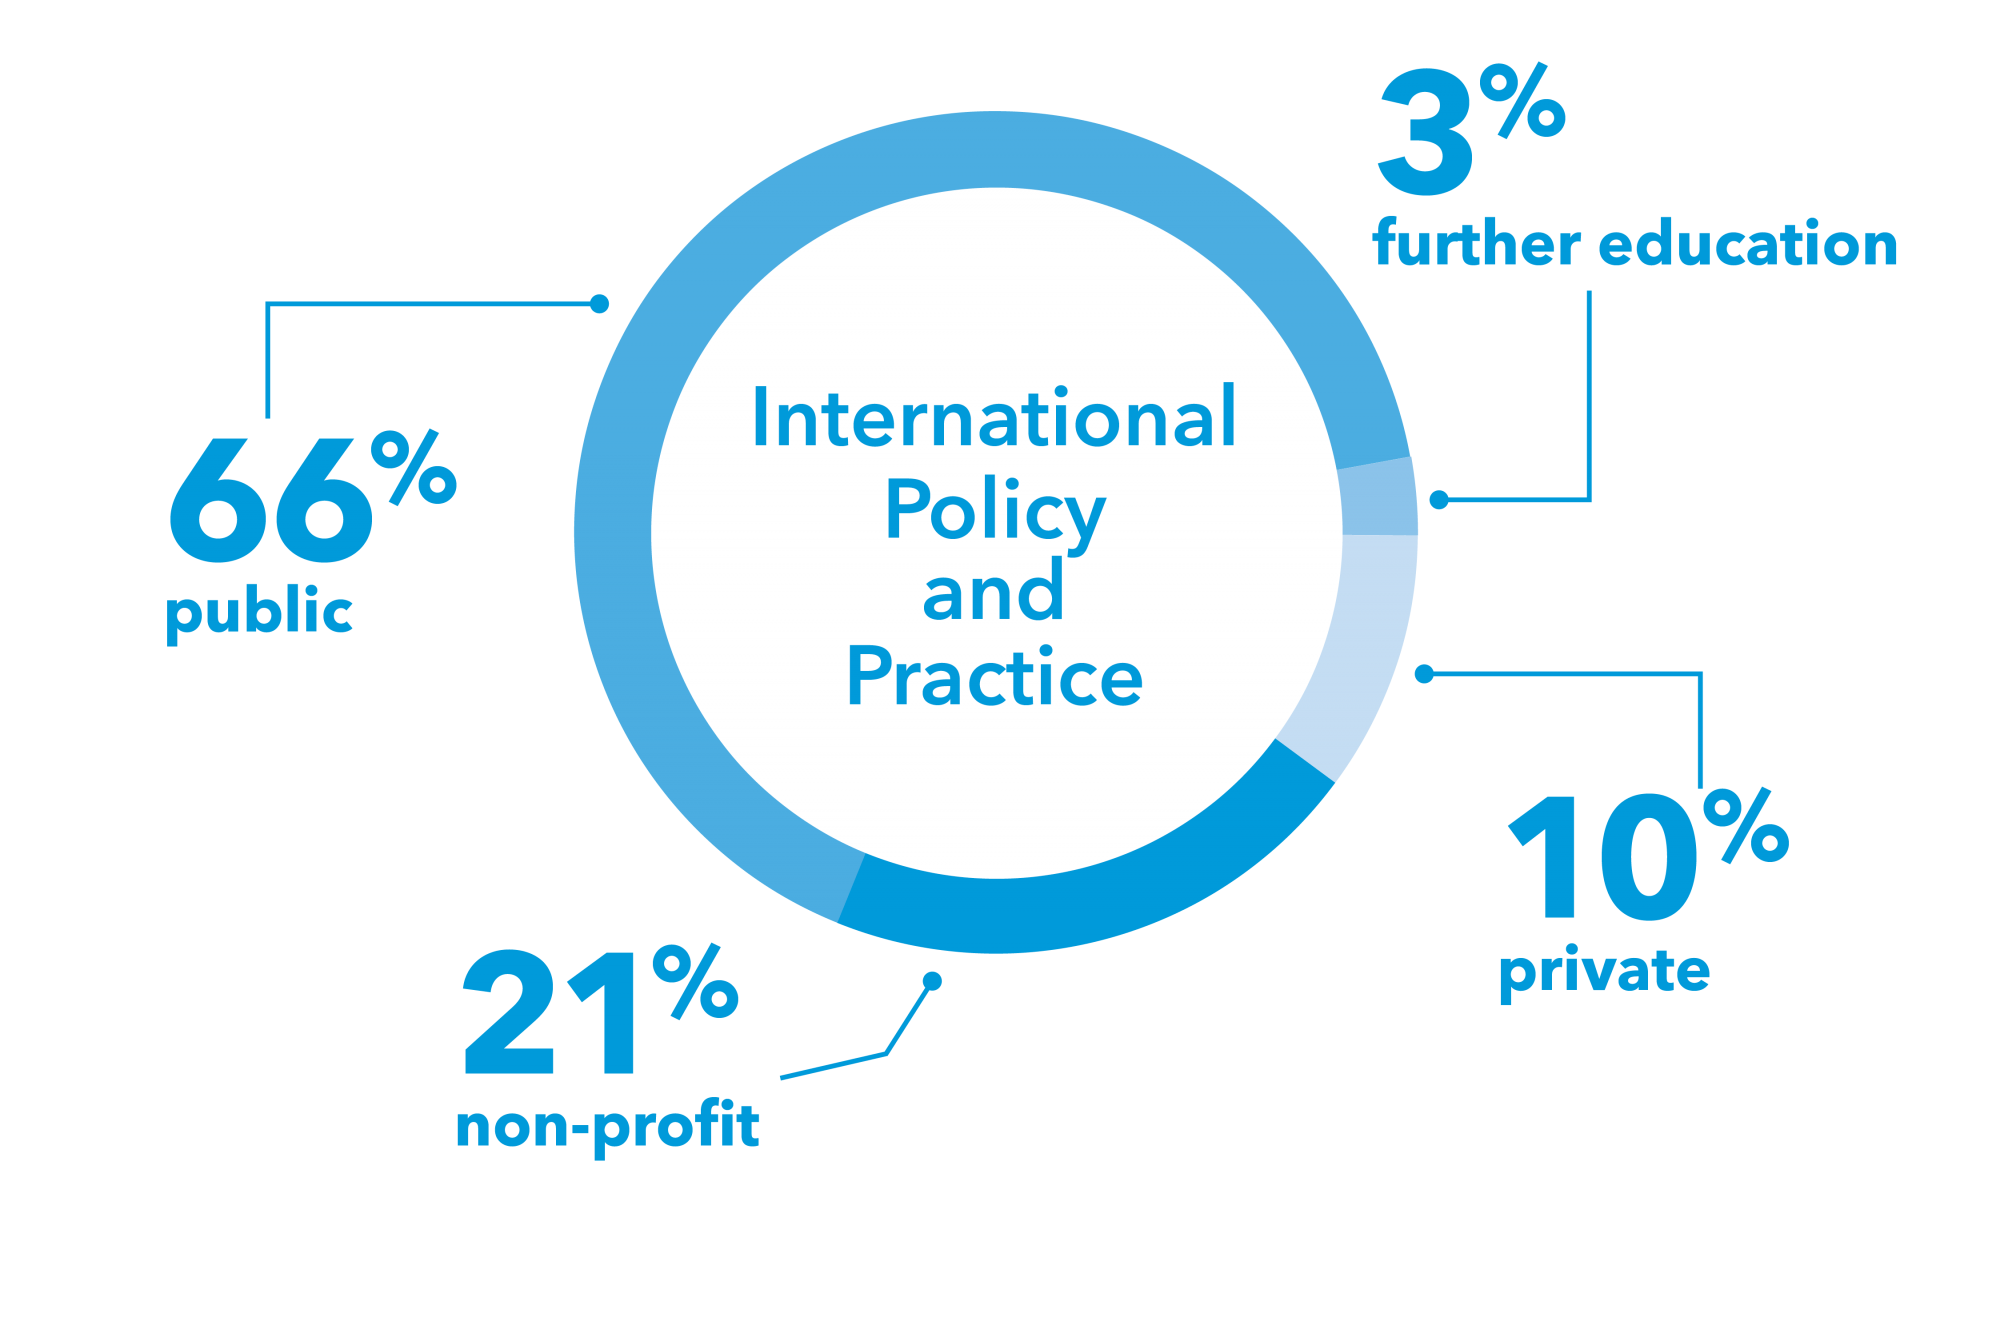 circle graph: text, International Policy & Practice, 10% private, 66% public, 21% non-profit, 3% further education